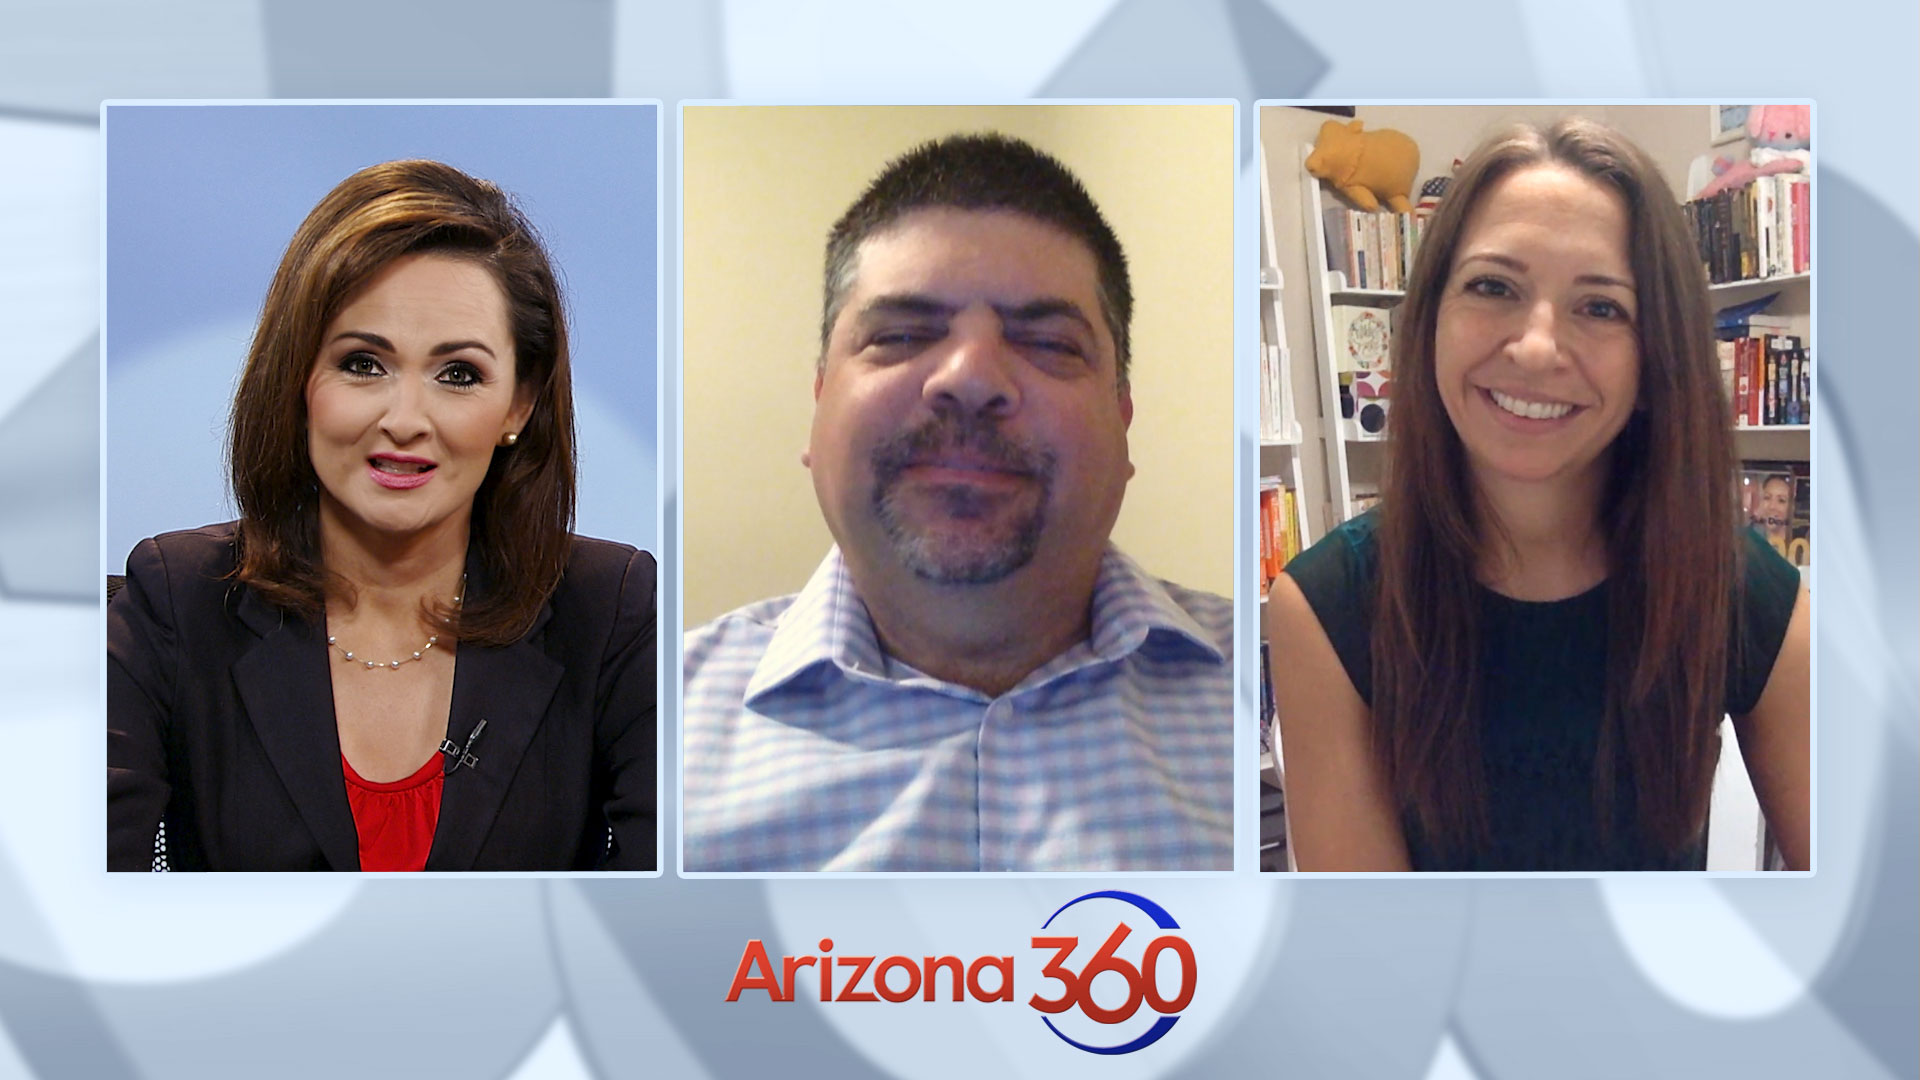 Arizona 360 host Lorraine Rivera interviews Republican consultant Barrett Marson and Democratic consultant Catherine Alonzo on September 2, 2020.